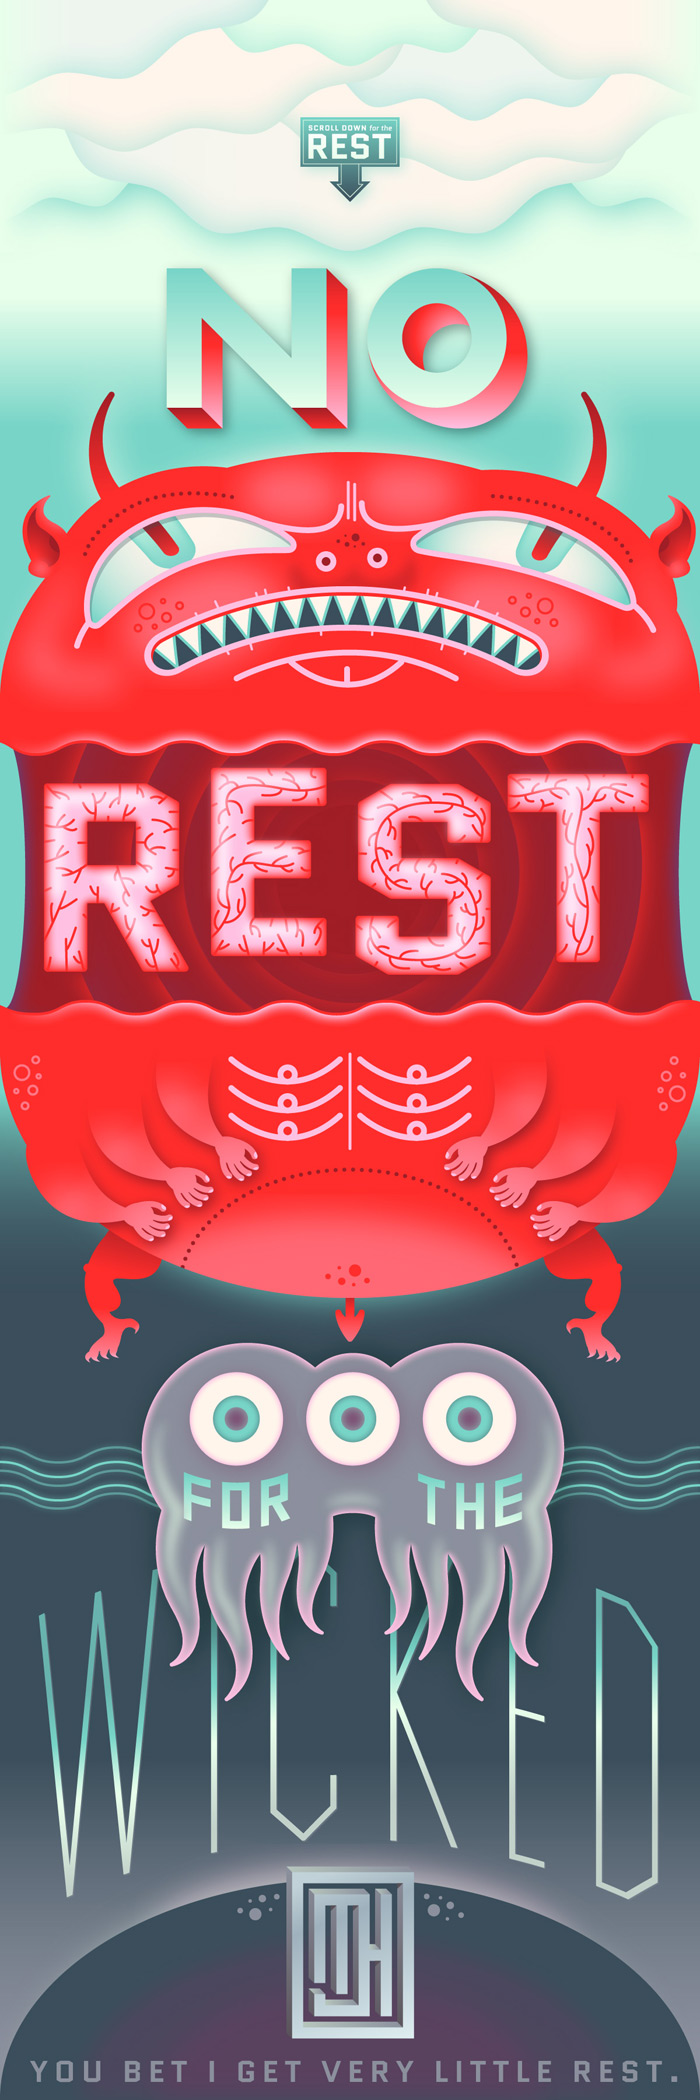 Michael J Hildebrand: Rest / on Design Work Life